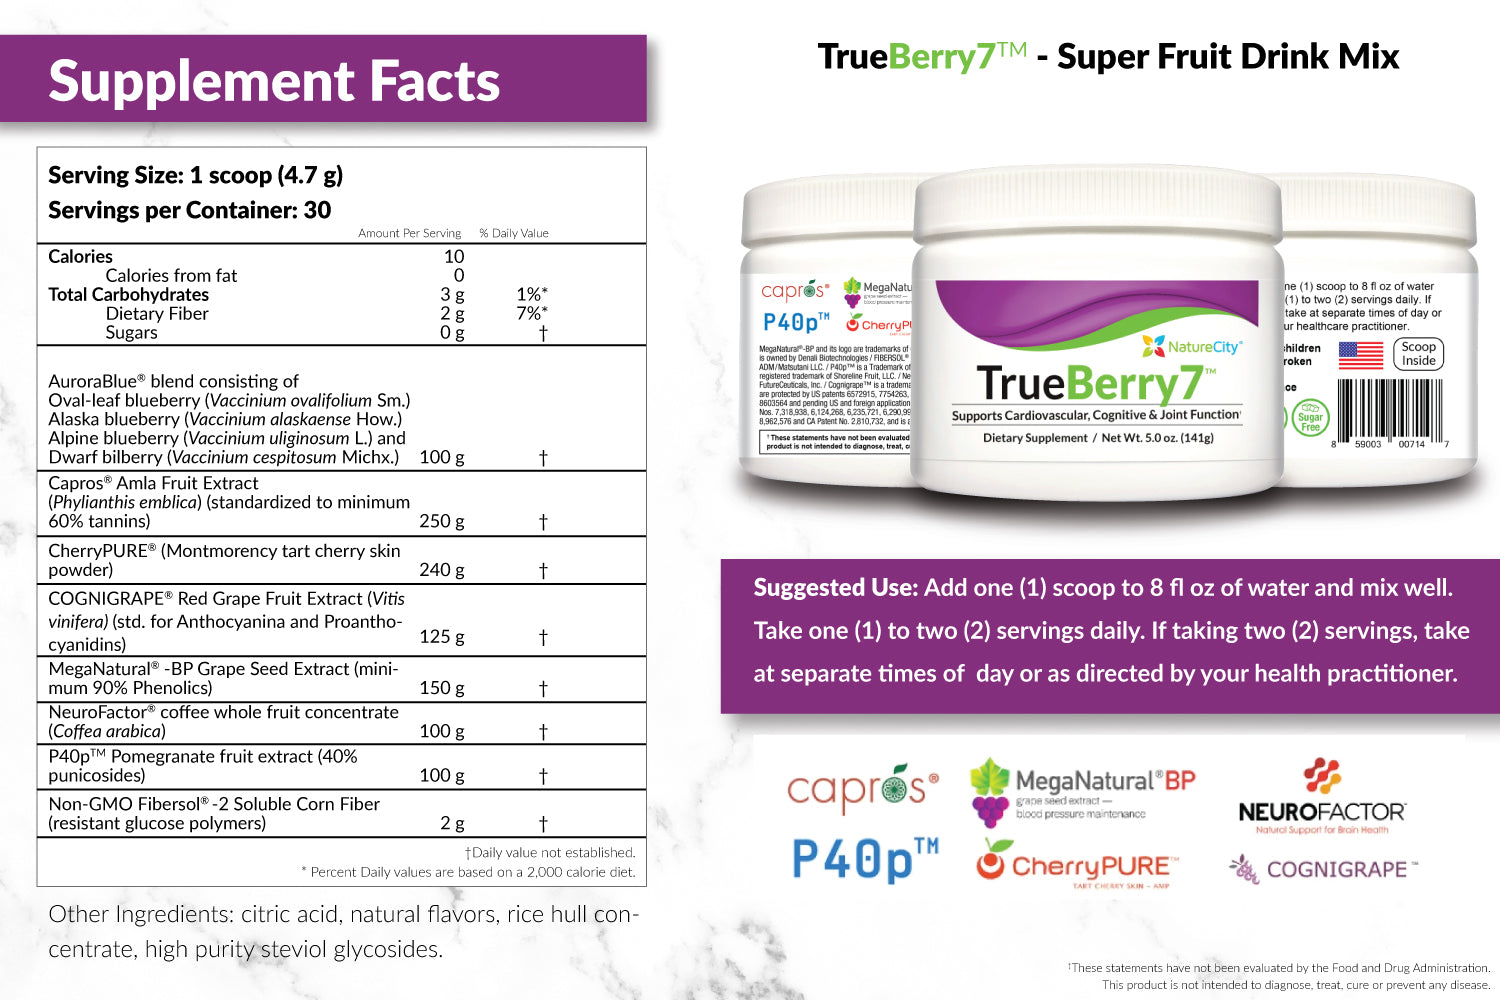 TrueBerry7 Super Fruit Supplement Facts and Suggested Use